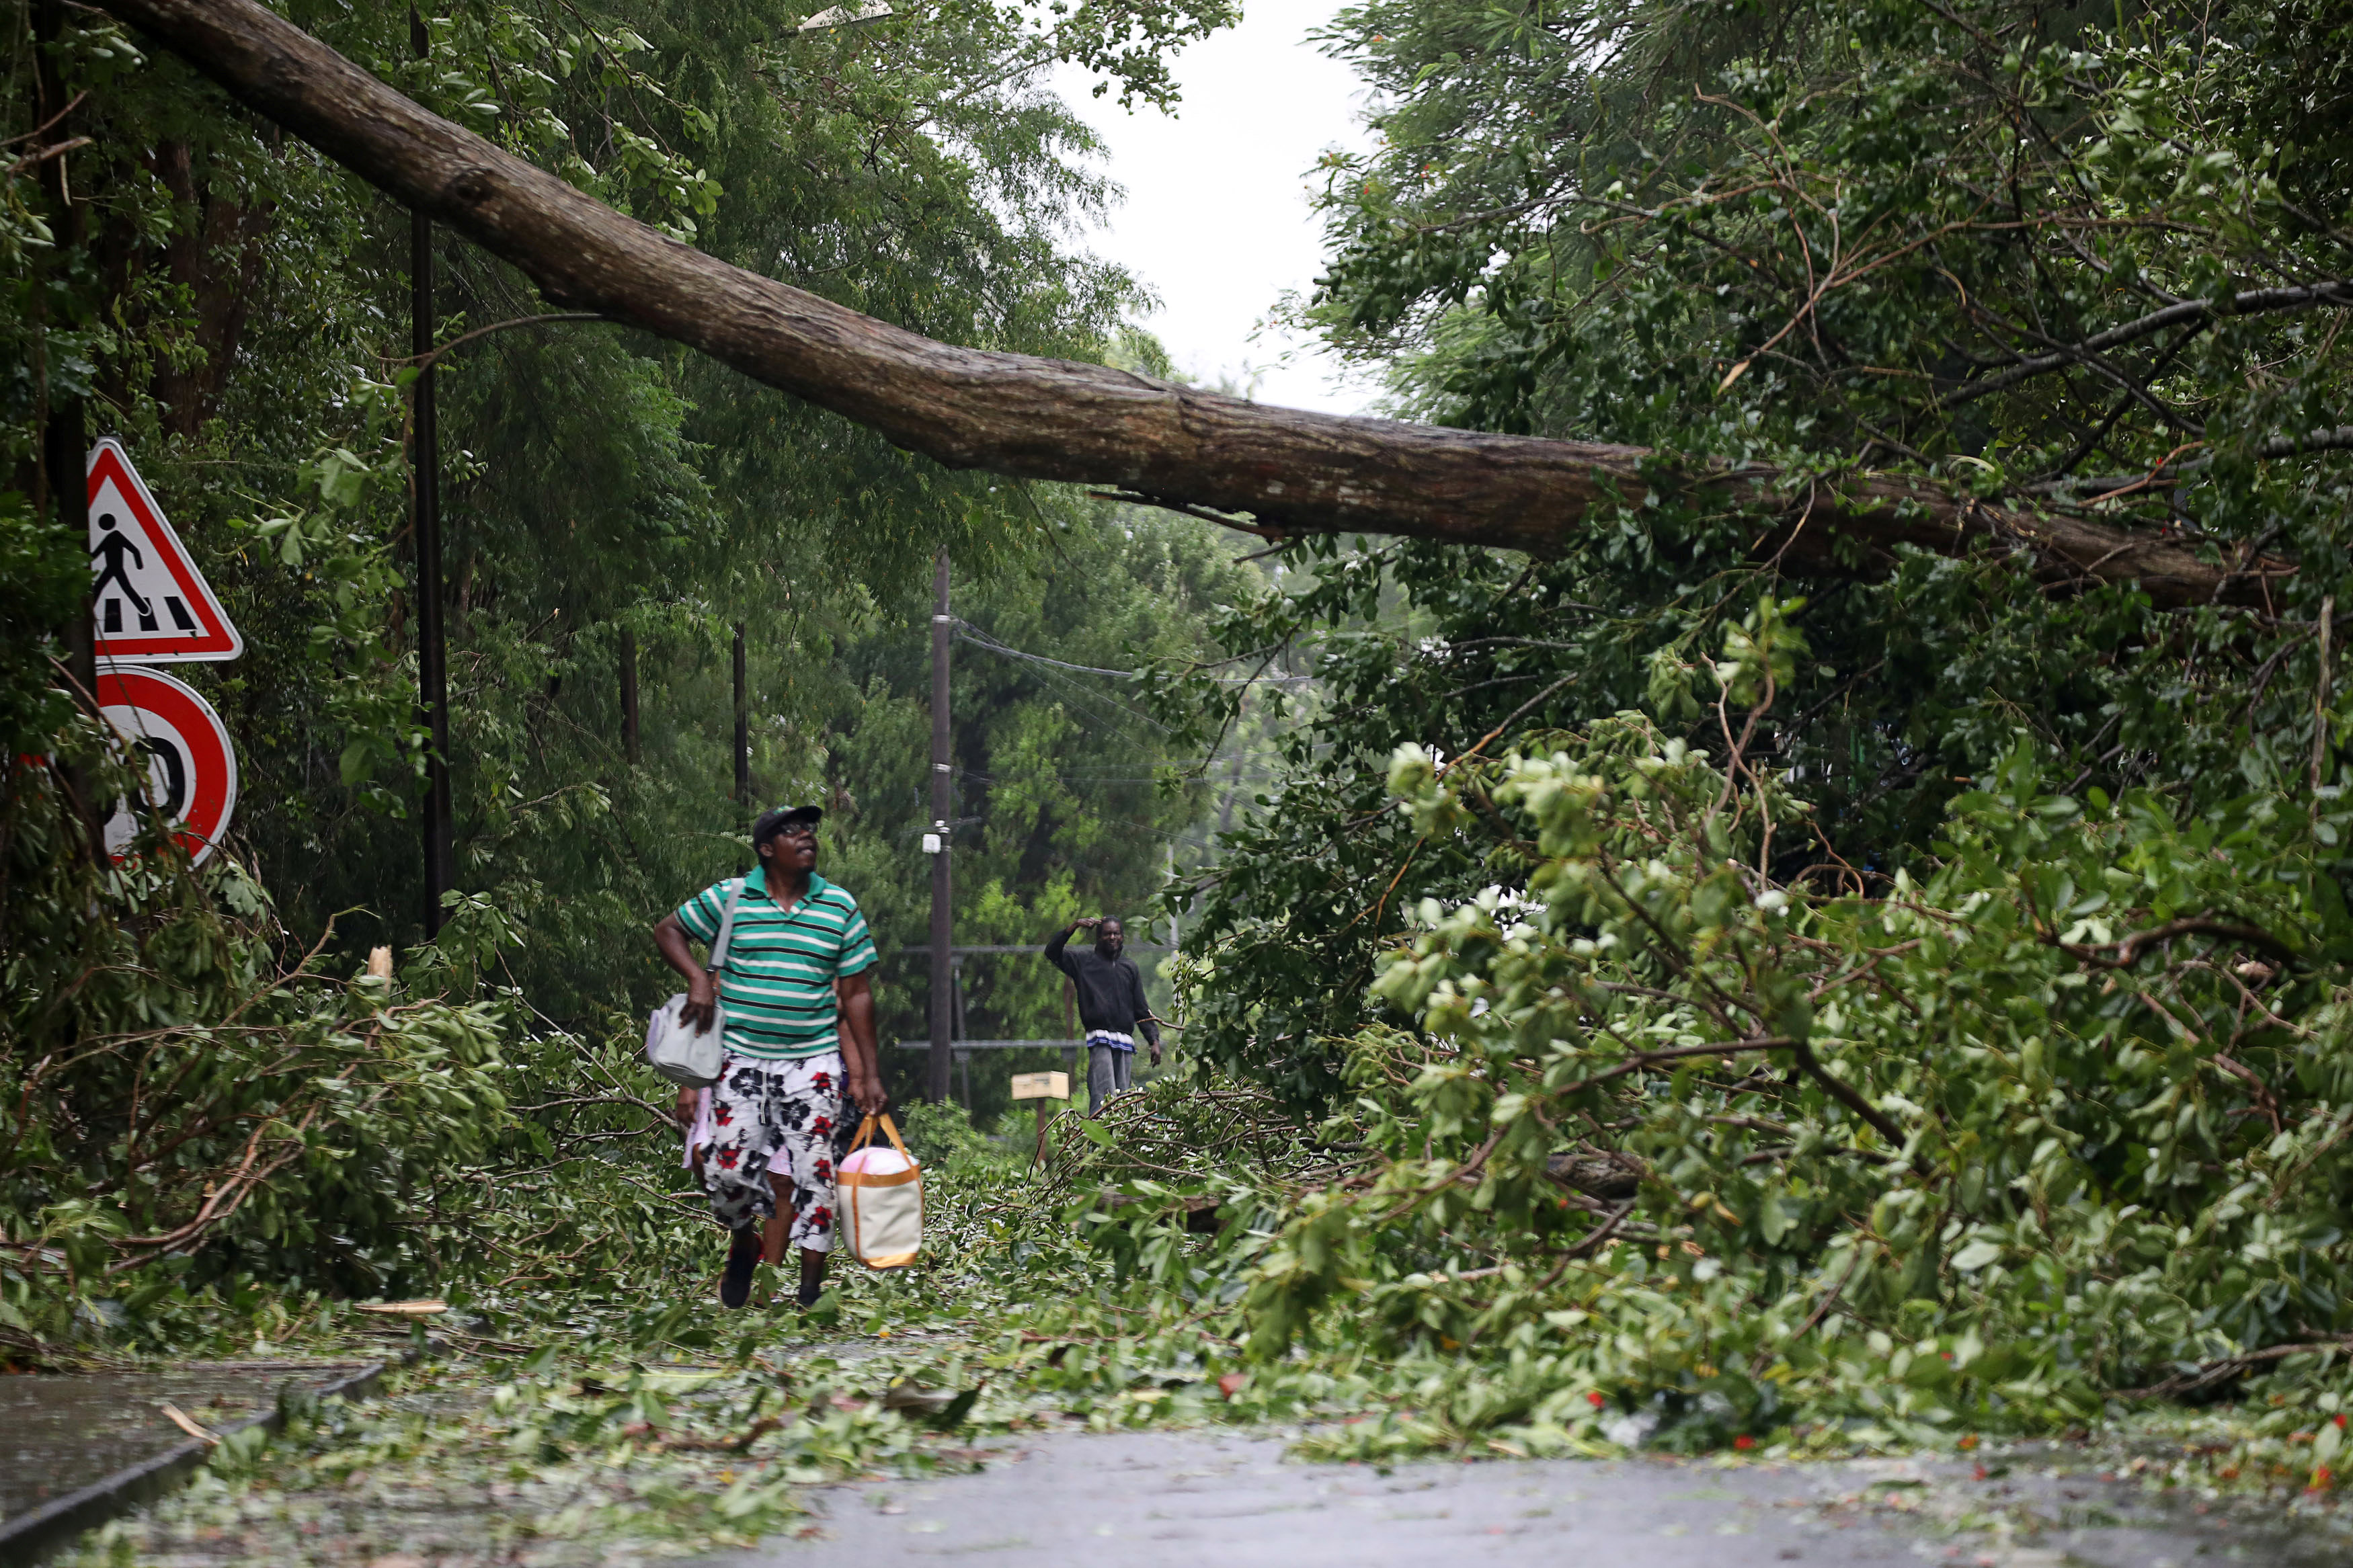 A man looks at a fallen tree as he walks along a street after the passage of Hurricane Maria in Pointe-a-Pitre, Guadeloupe island, France, September 19, 2017. REUTERS/Andres Martinez Casares